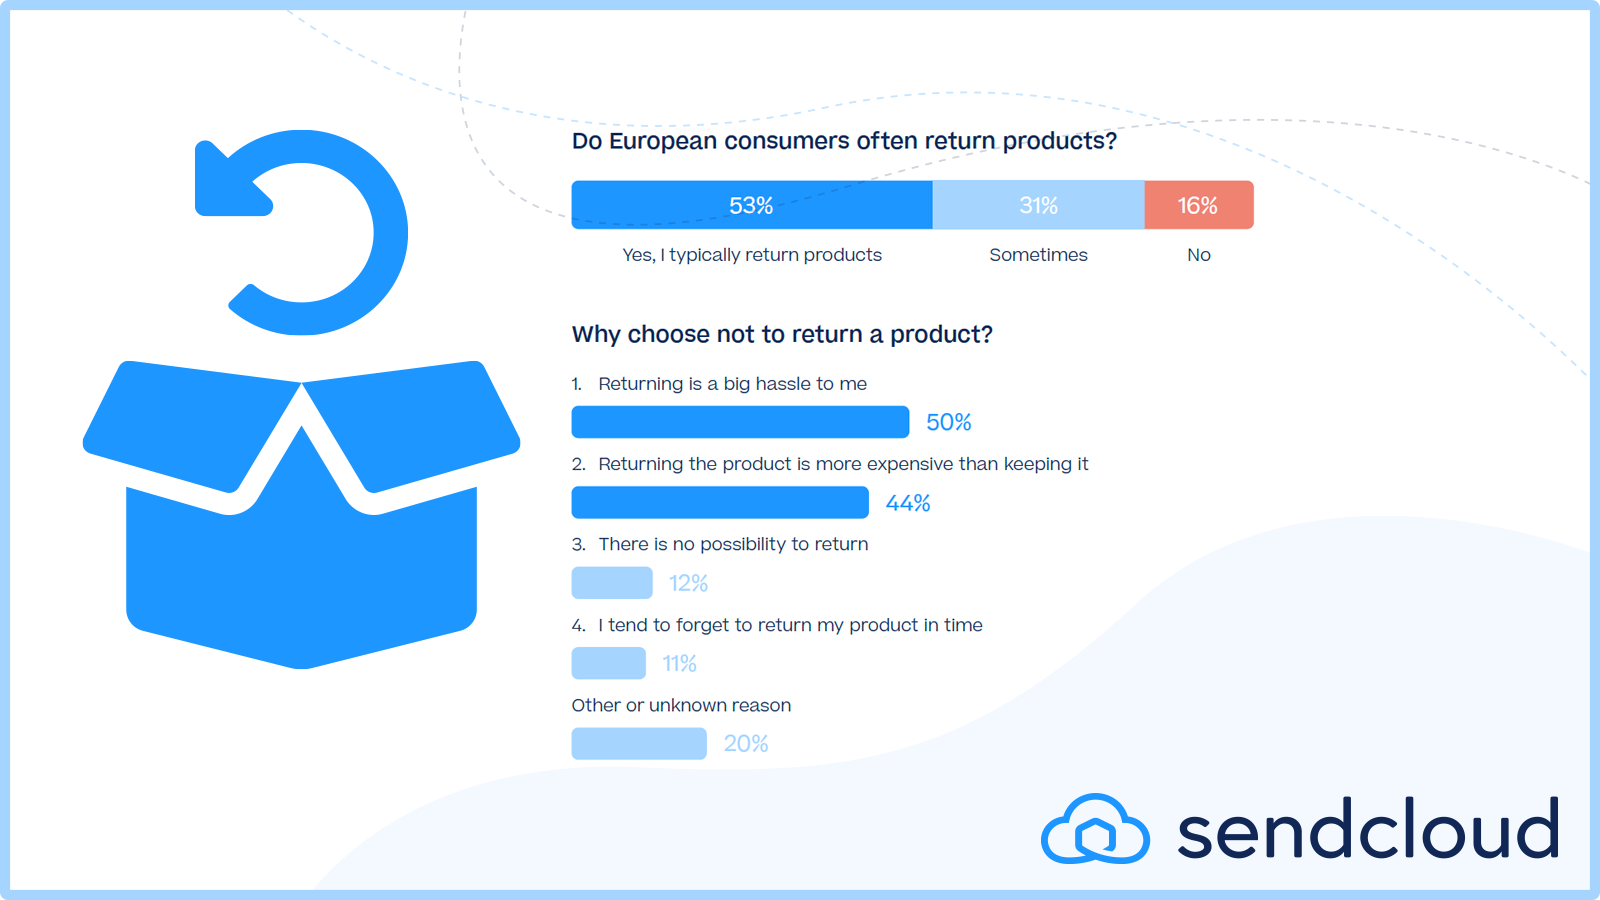 sendcloud-consumer-research-what-do-european-consumers-think-about-returnsXREMS2iVOrqCe